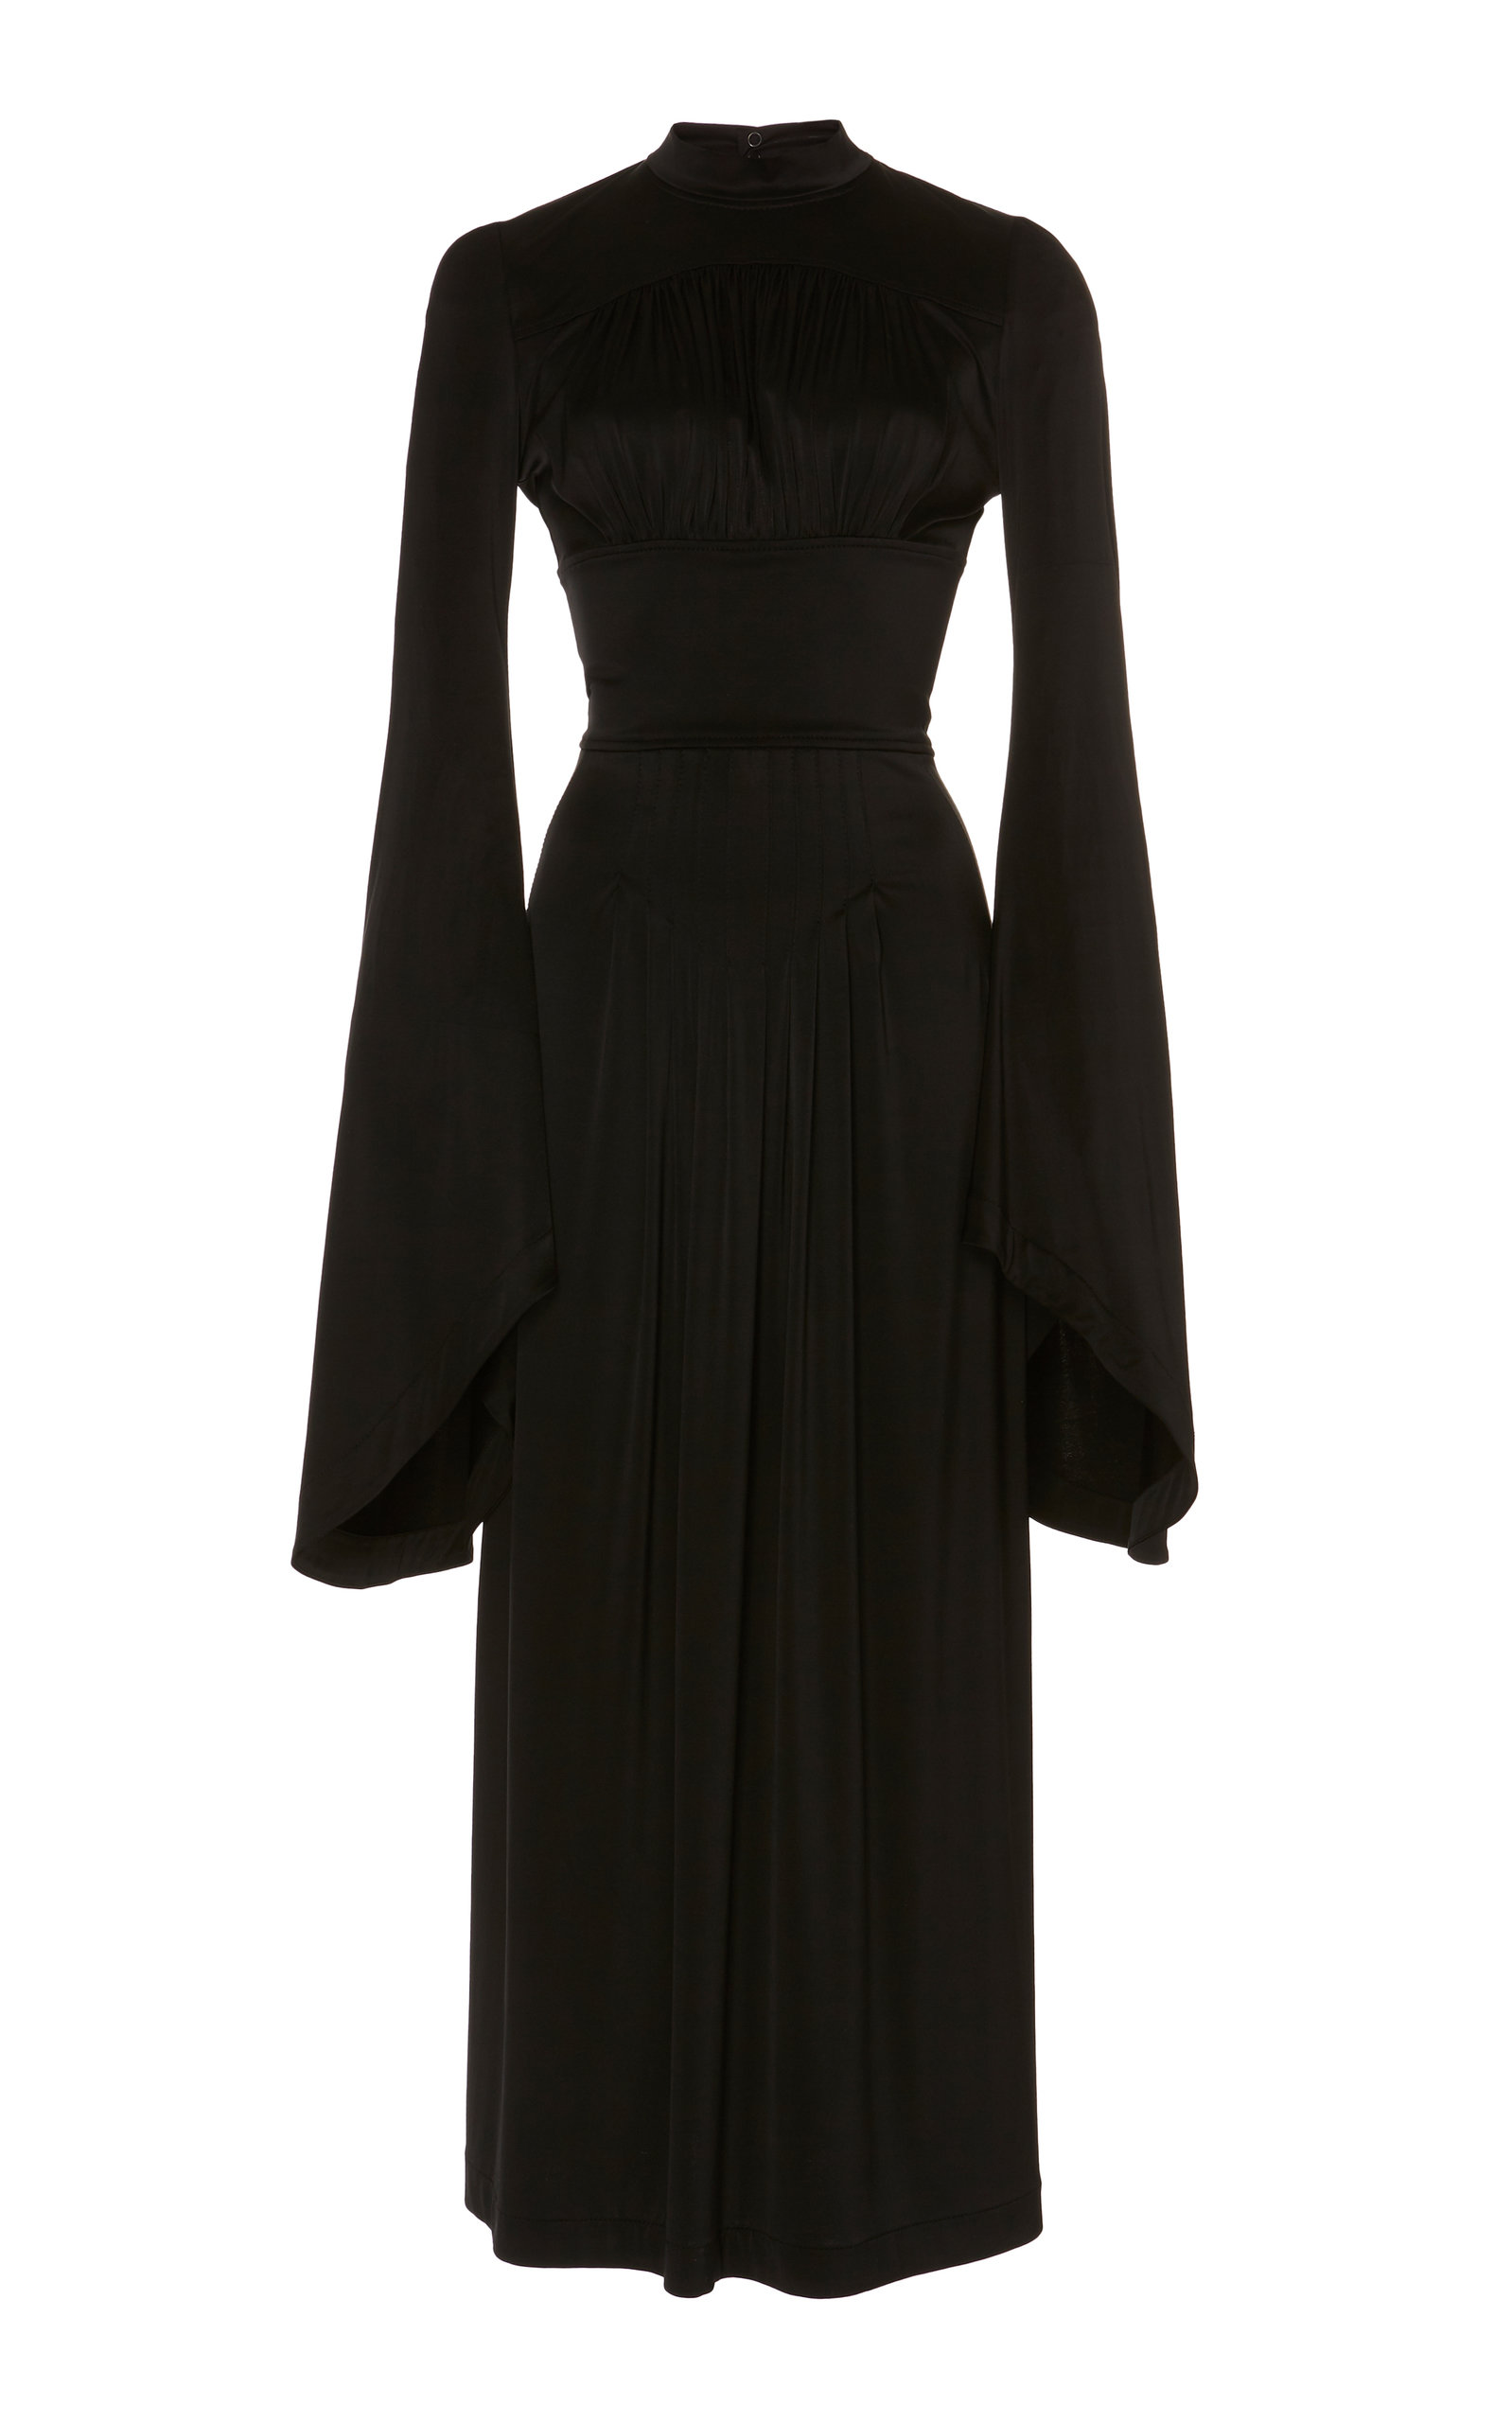 Buy Paco Rabanne Pleated Satin Midi Dress online, shop Paco Rabanne at the best price